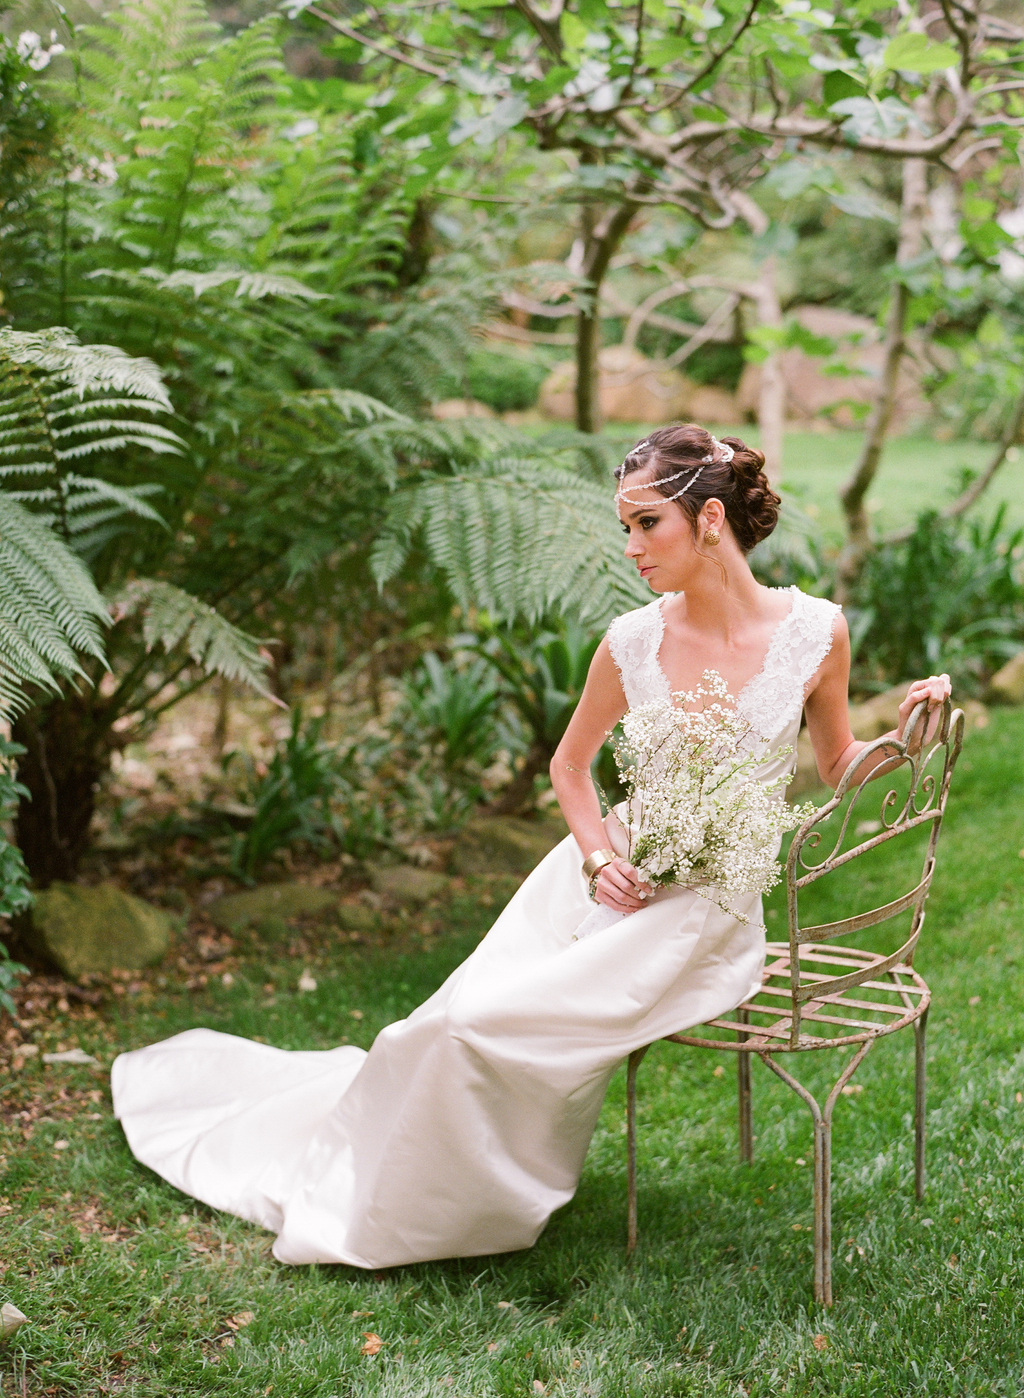 Styled-wedding-santa-barbara-chic-beaux-arts-phtographie-italian-bohemian-wedding-bride-wedding-dress-lace-bouquet-092.full